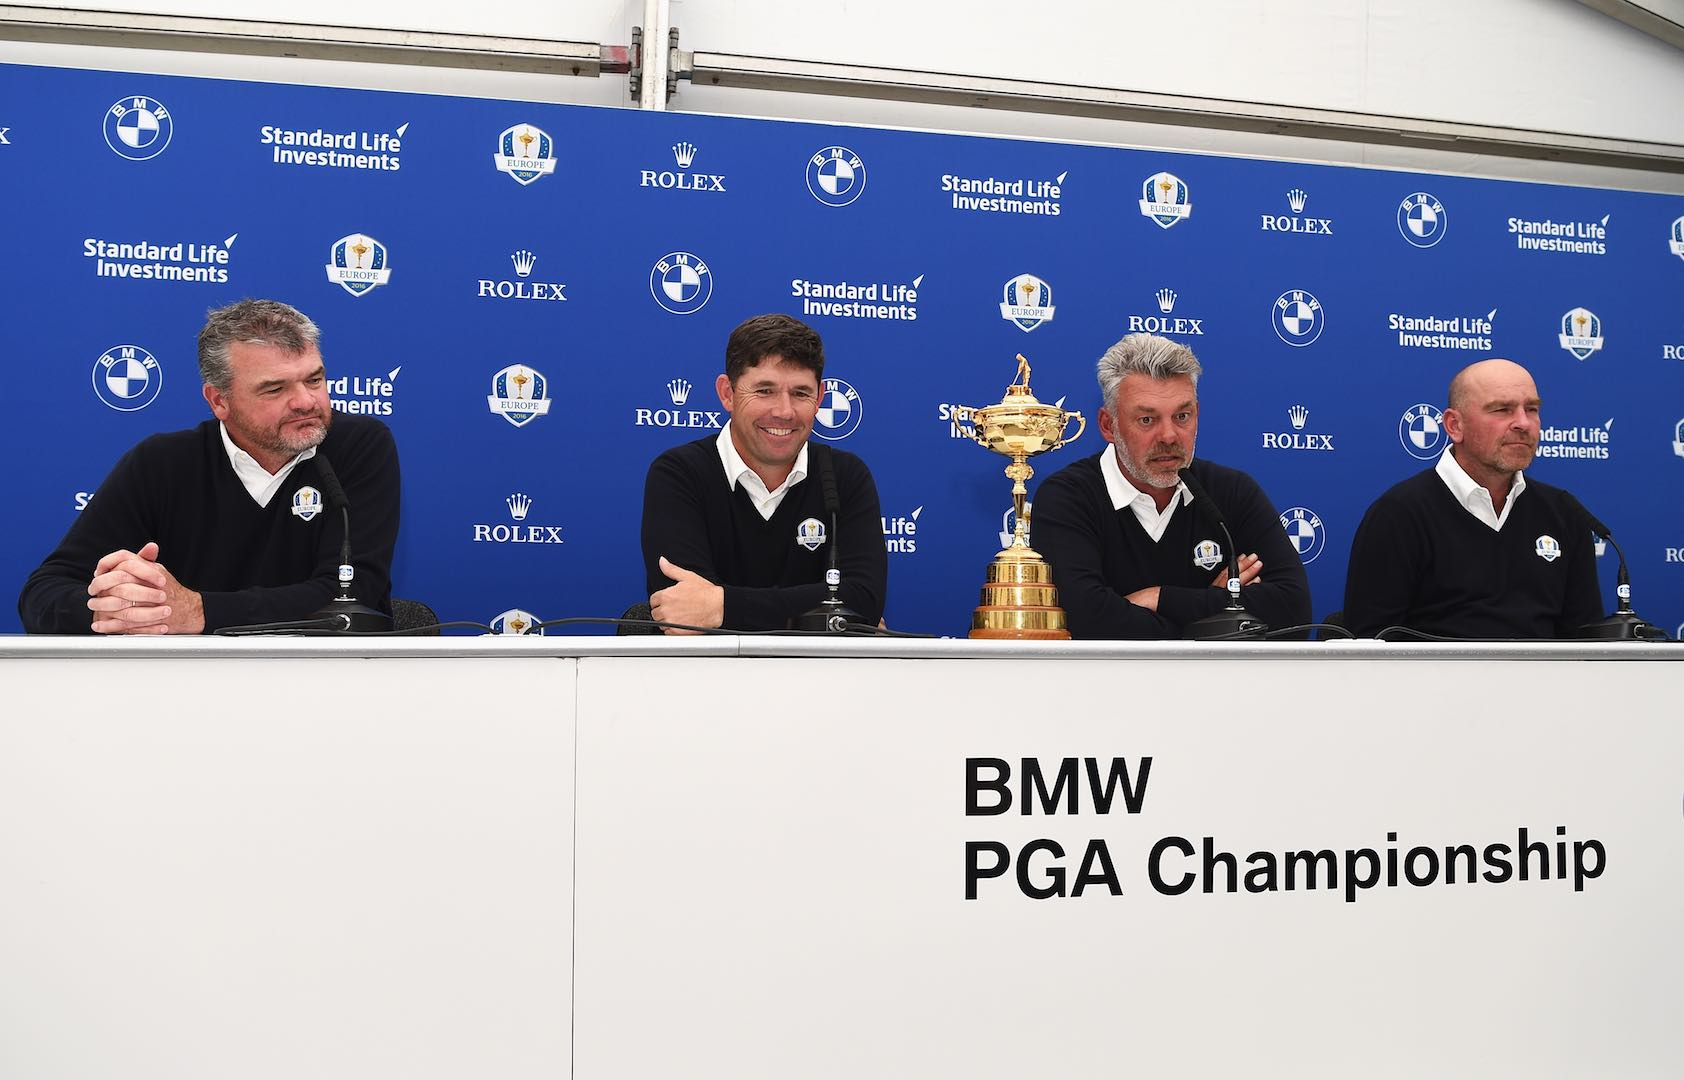 Harrington, Bjorn, and Lawrie named Ryder Cup Vice Captains